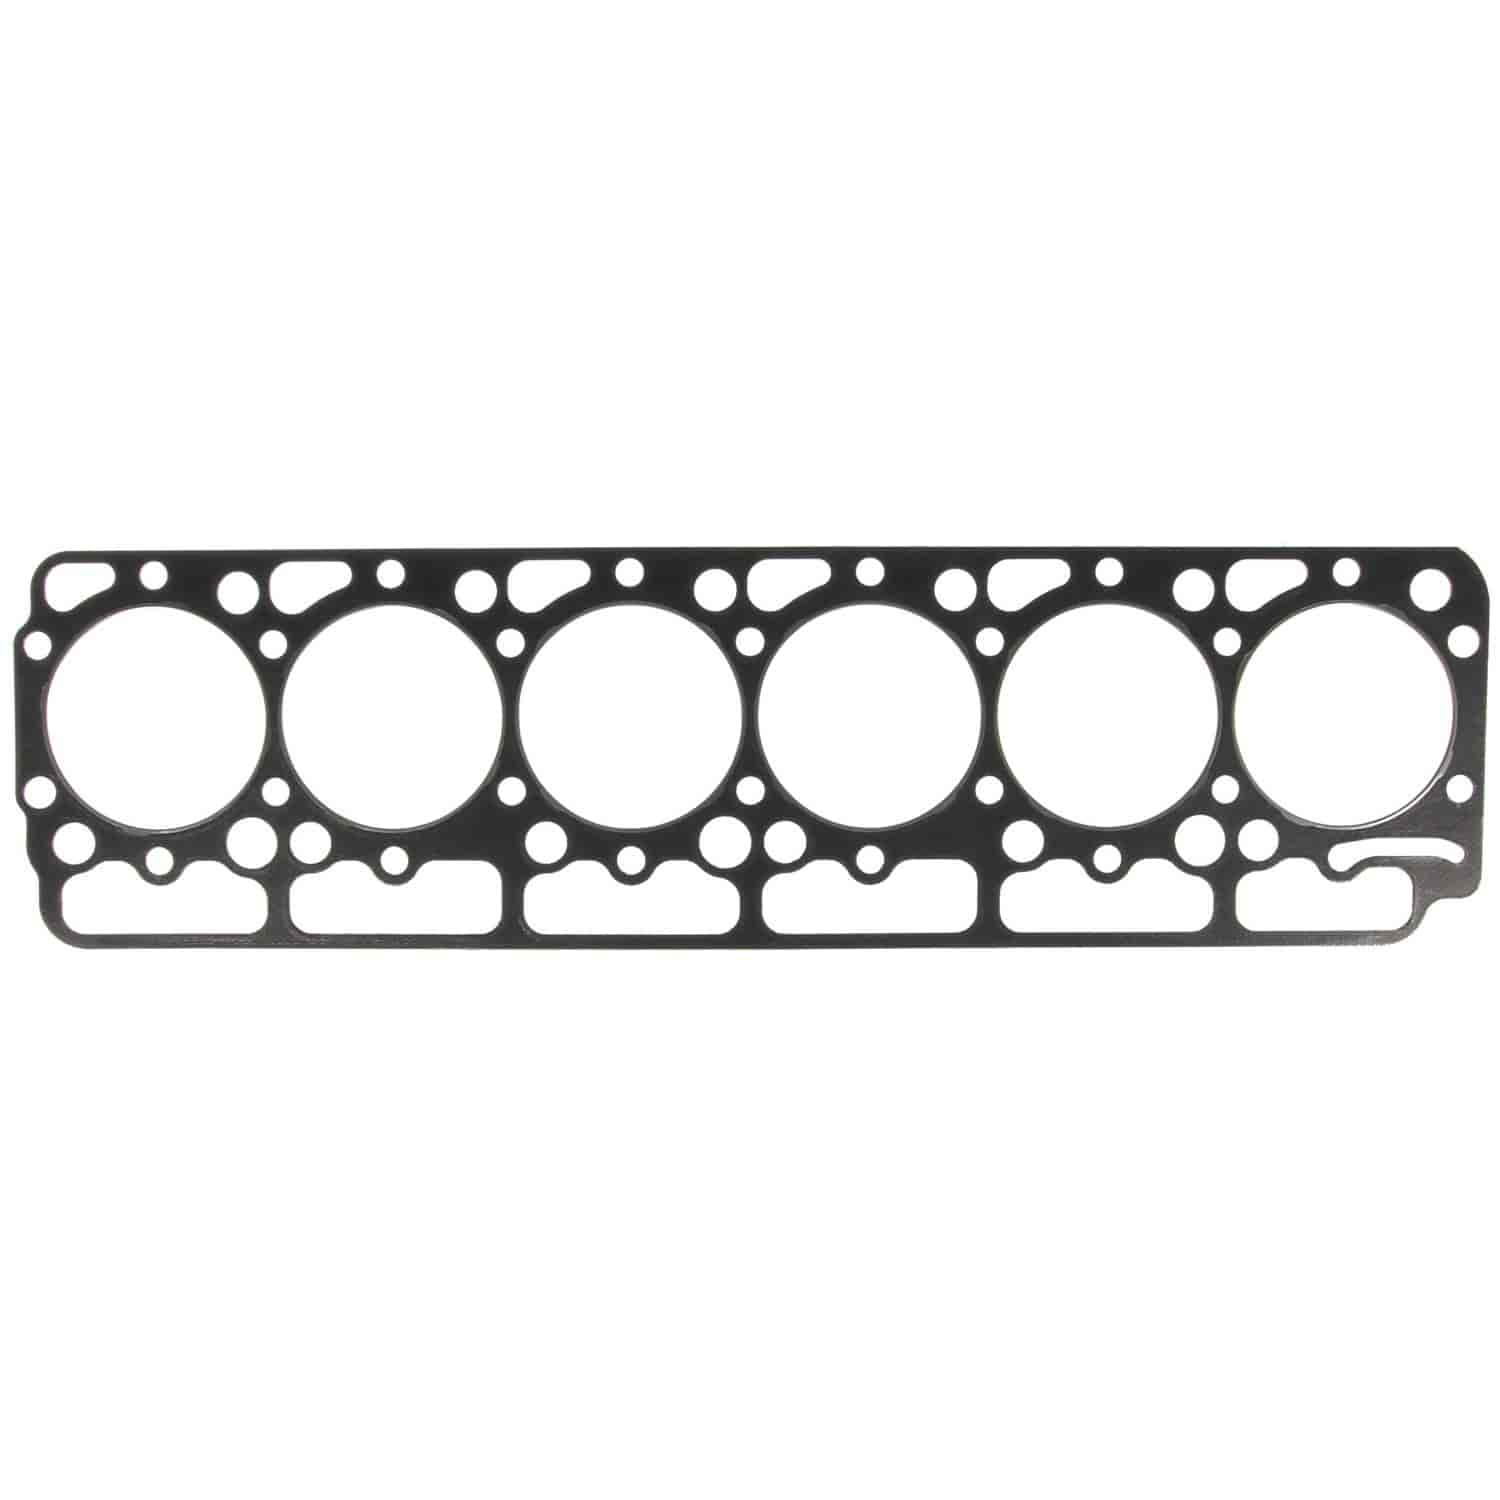 Clevite Mahle Cylinder Head Gasket Ihc Trk Amp Trac D414